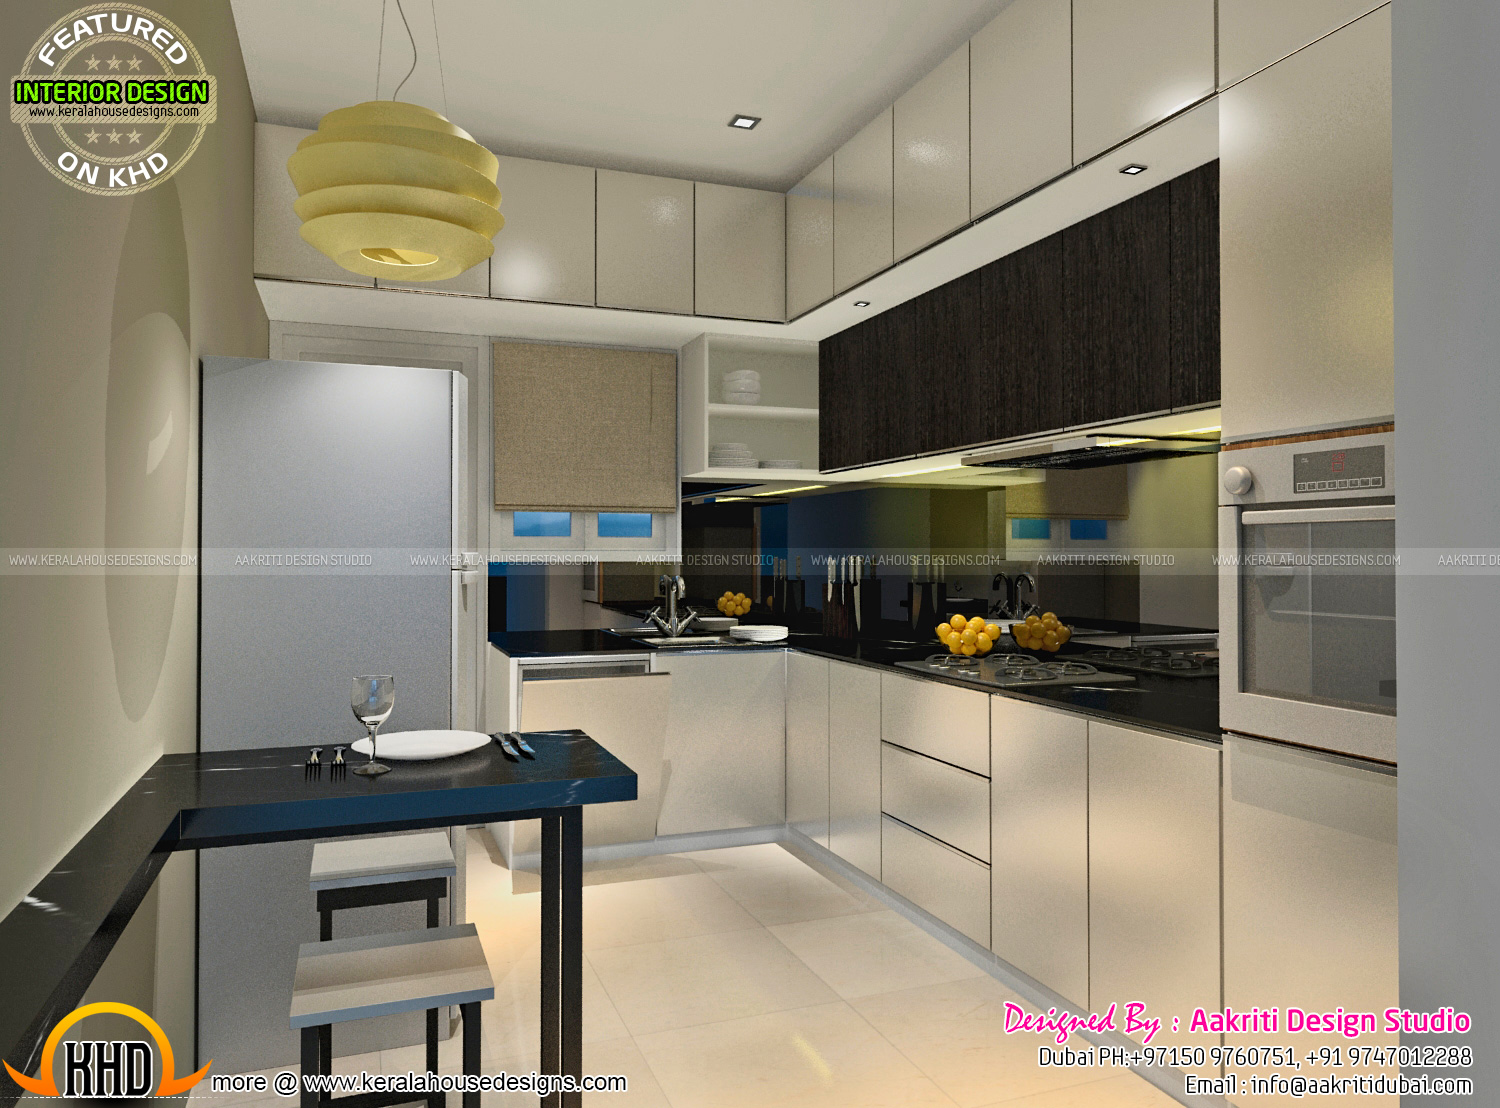 Dining kitchen wash area interior kerala home design for Kerala model interior designs